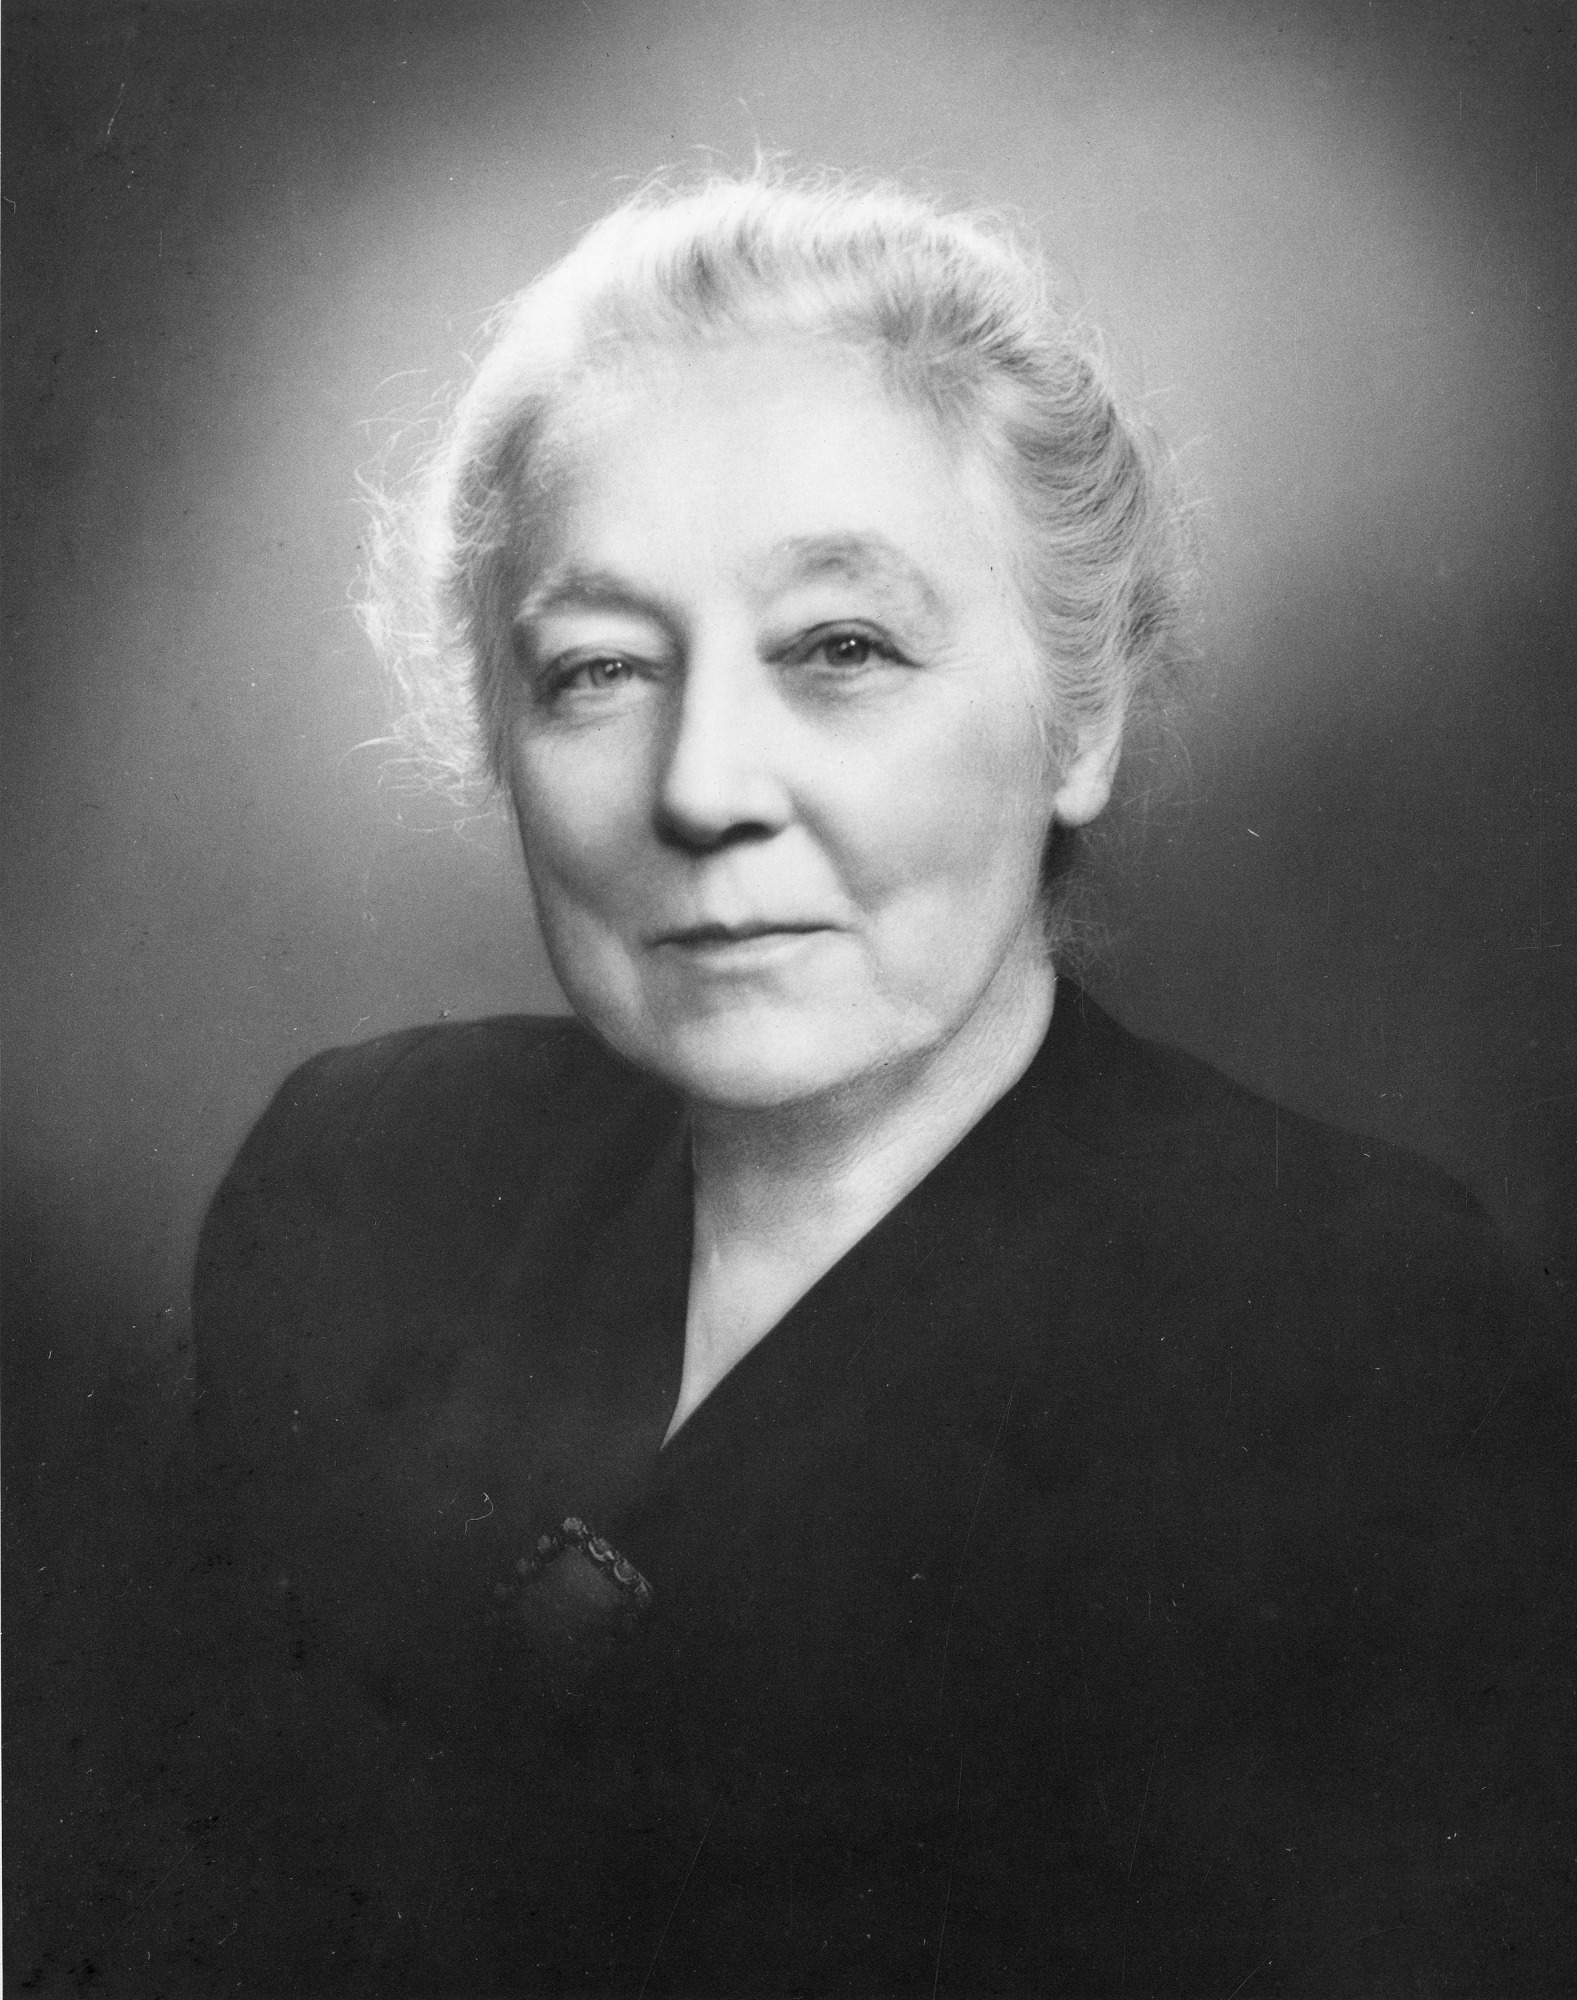 Catherine Macfarlane (1877-1969), 1940, Smithsonian Institution Archives, SIA Acc. 90-105 [SIA2008-5682].